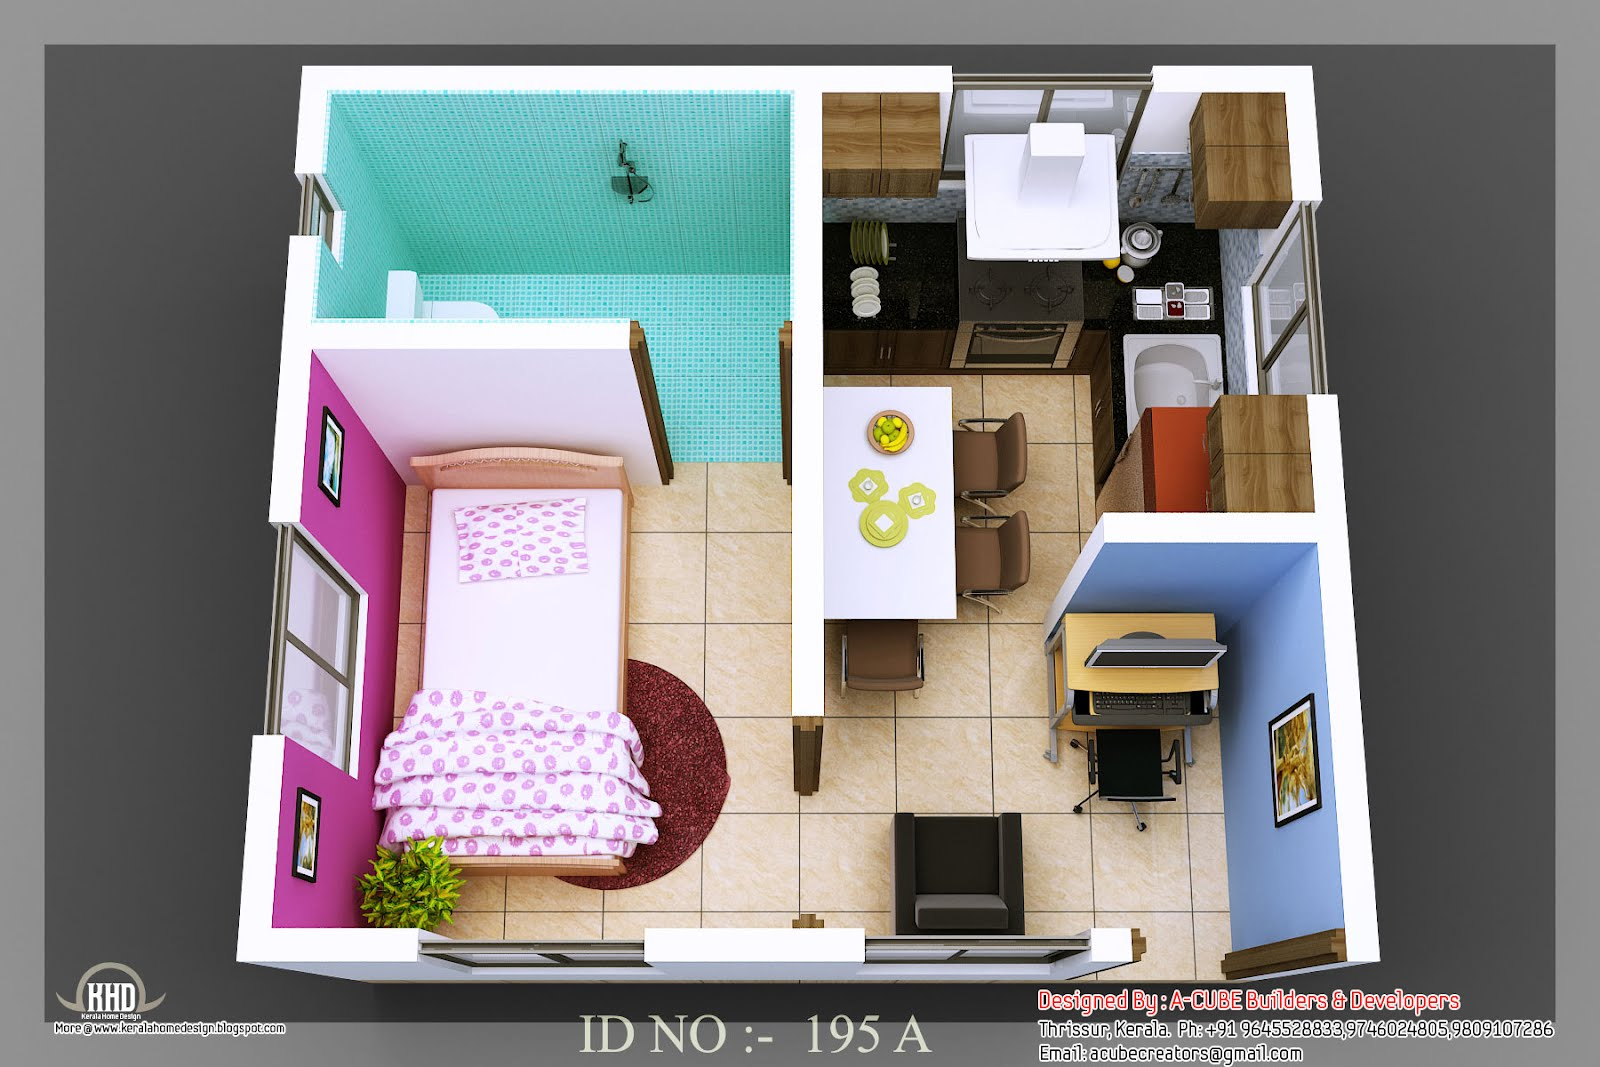 3d isometric views of small house plans home appliance 3d interior design online